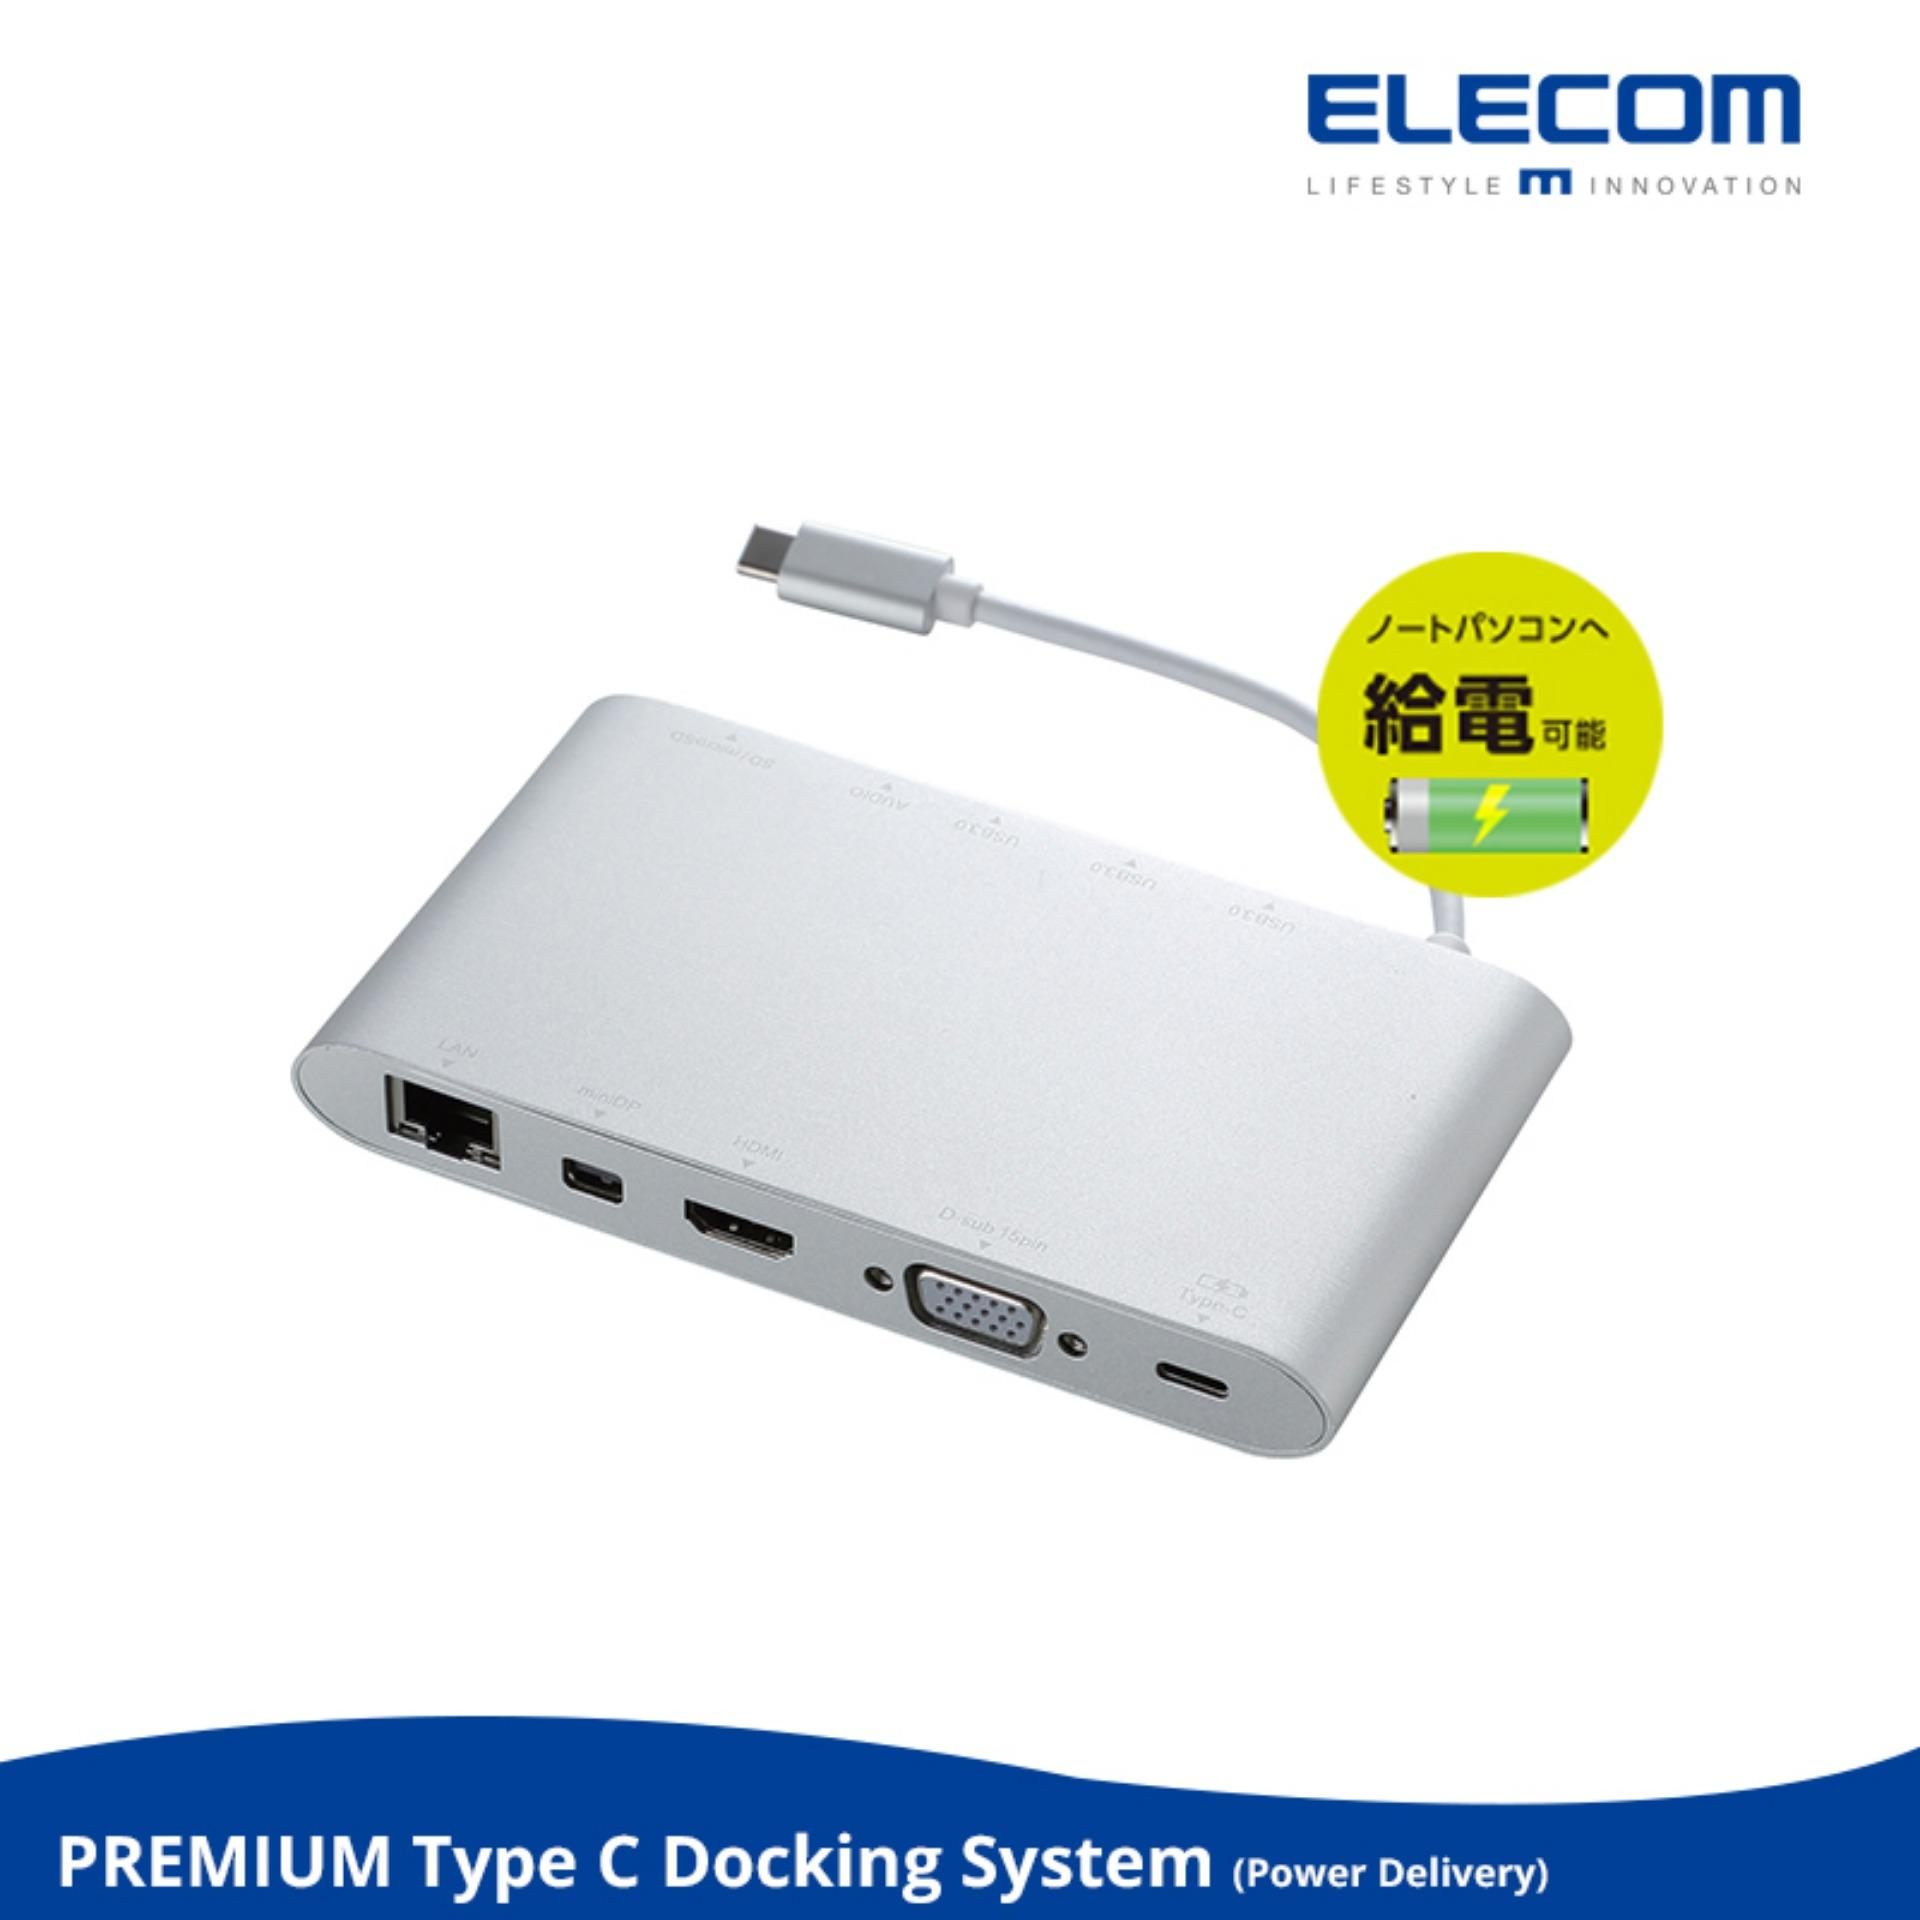 Macbook Docking Station Power Delivery Type C To Usb Hdmi Vga Display Port Microsd Price Comparison